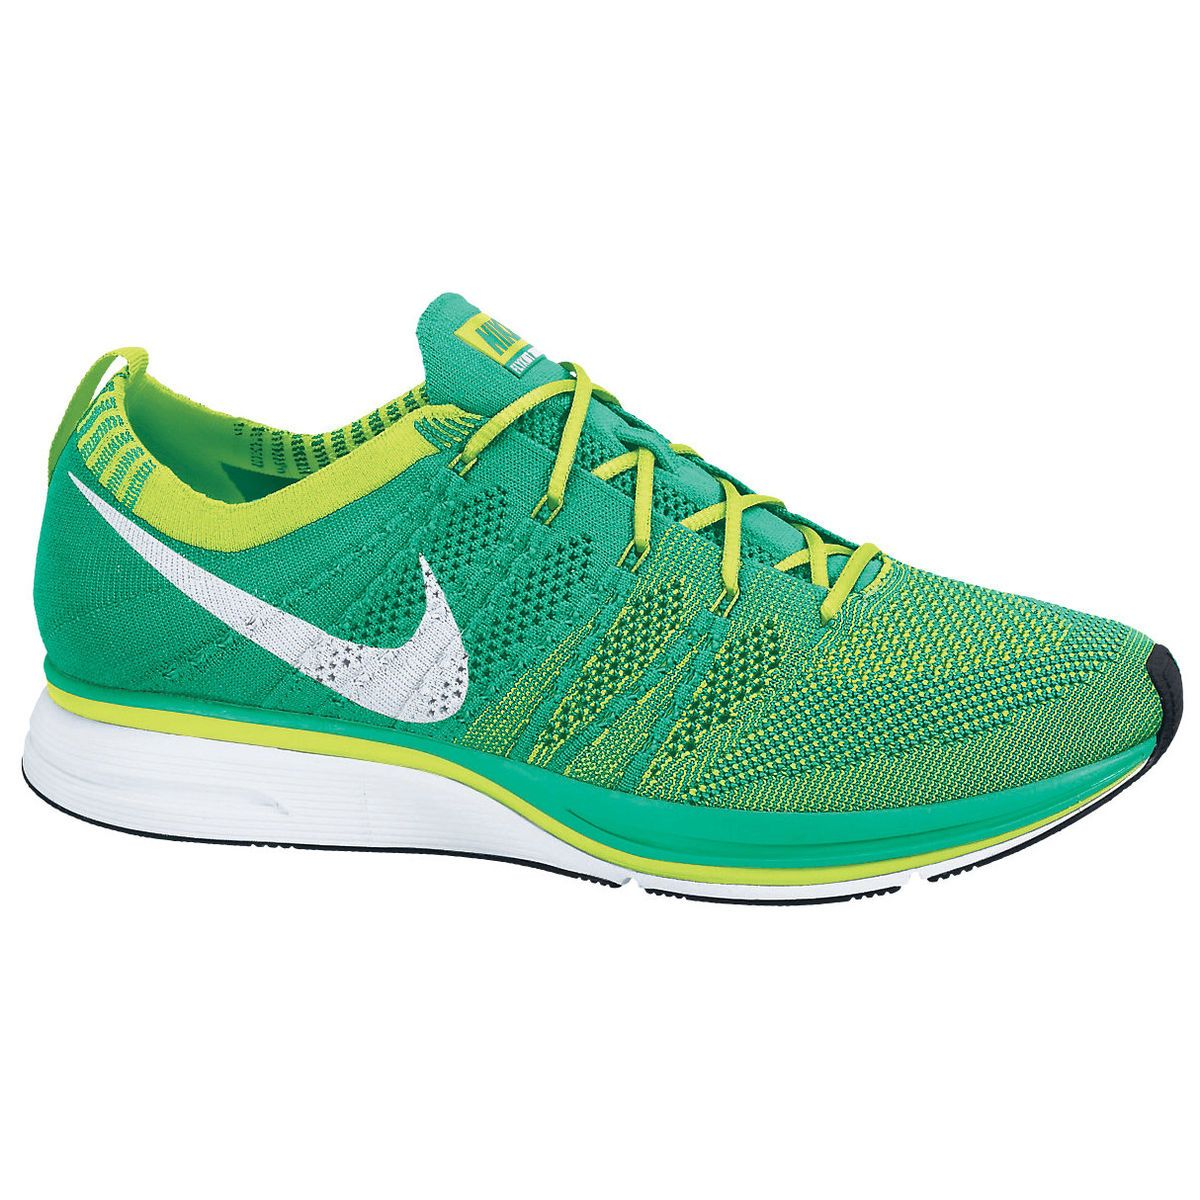 check out d316e 2ad2c Wiggle Australia   Nike Flyknit Trainer Plus Shoes   Cushion Running Shoes